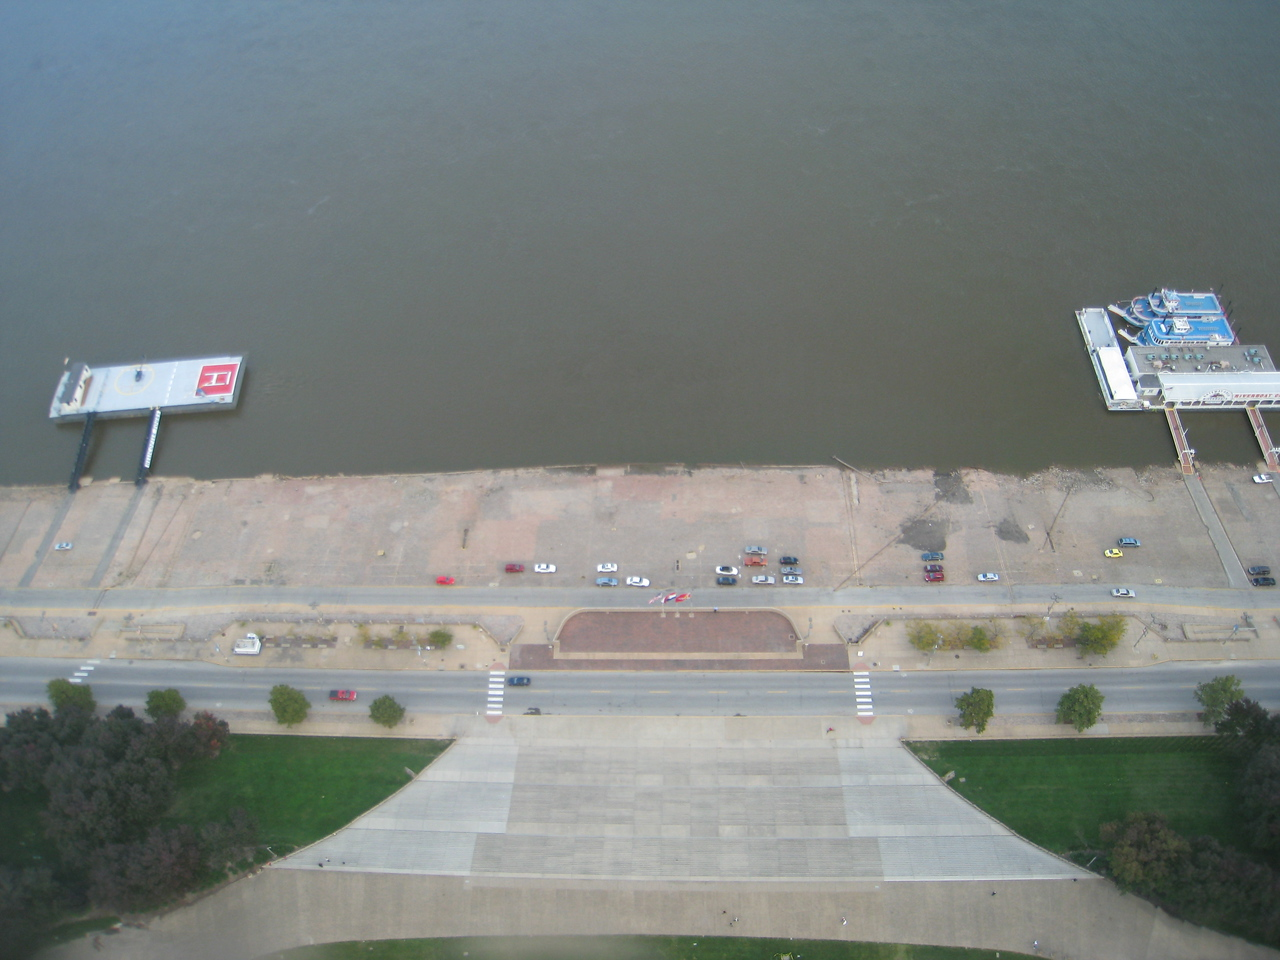 View from the top of the arch, looking east